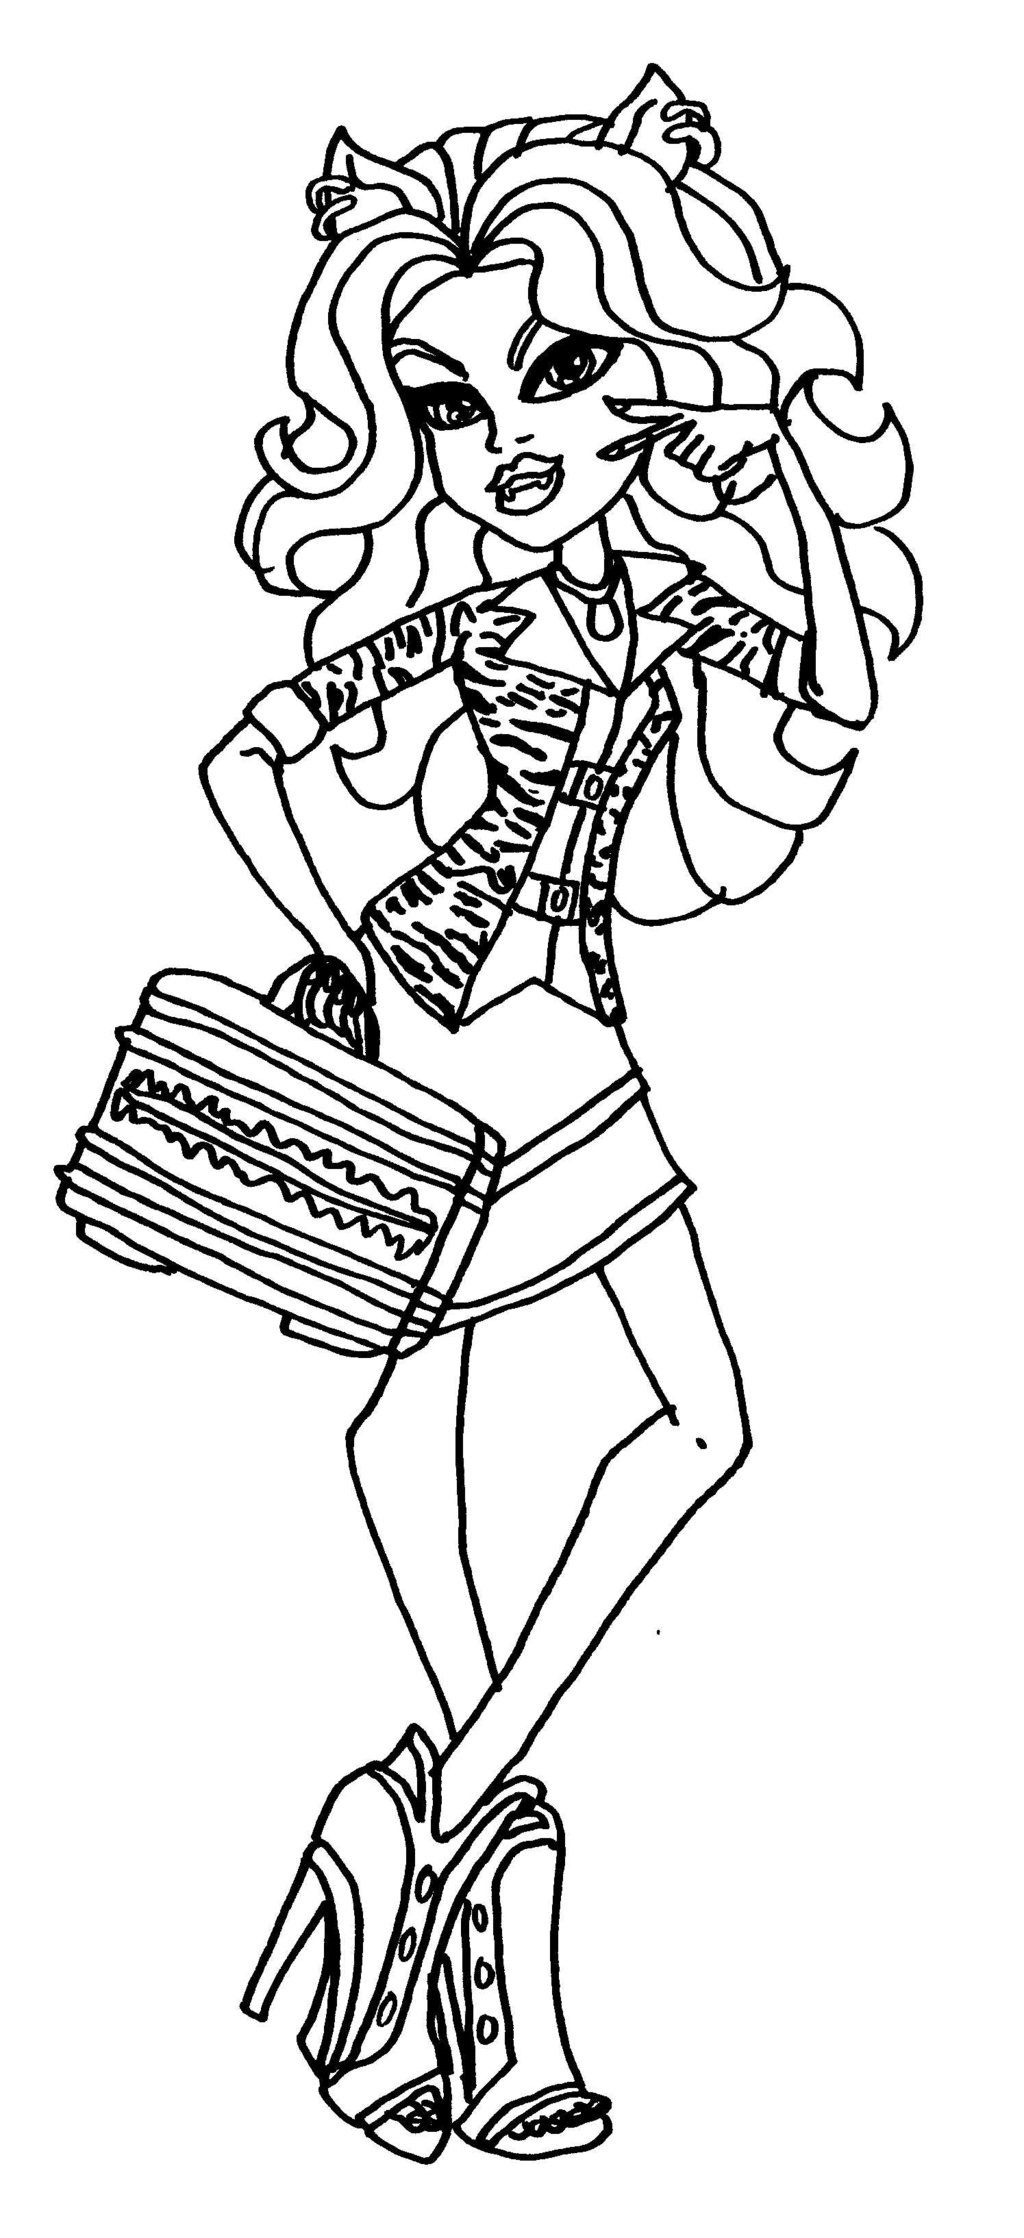 howleen 13 wishes coloring pages - photo#24